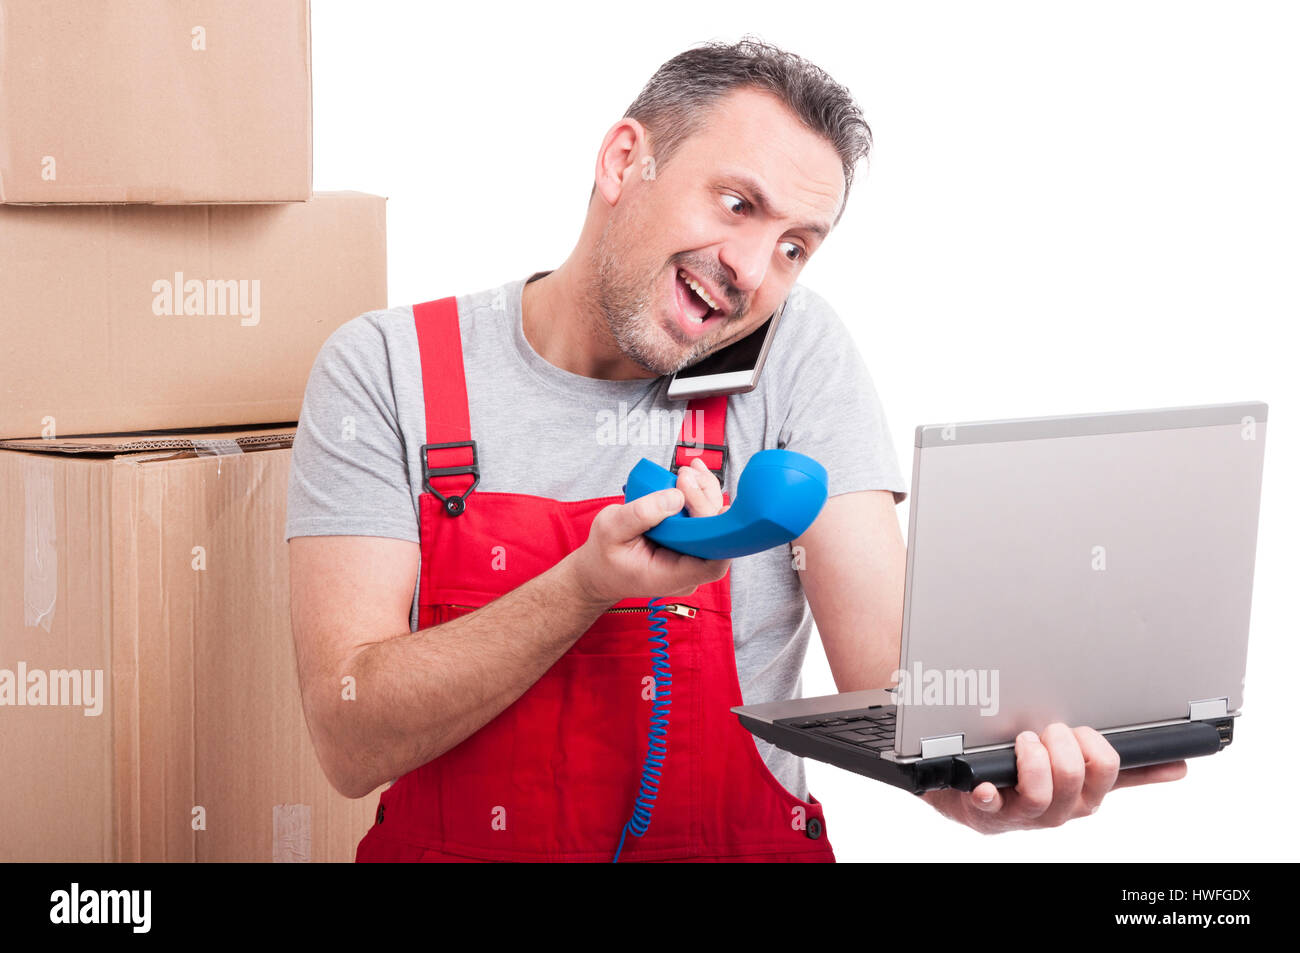 Busy mover guy multitasking with laptop and phones and yelling isolated on white background - Stock Image